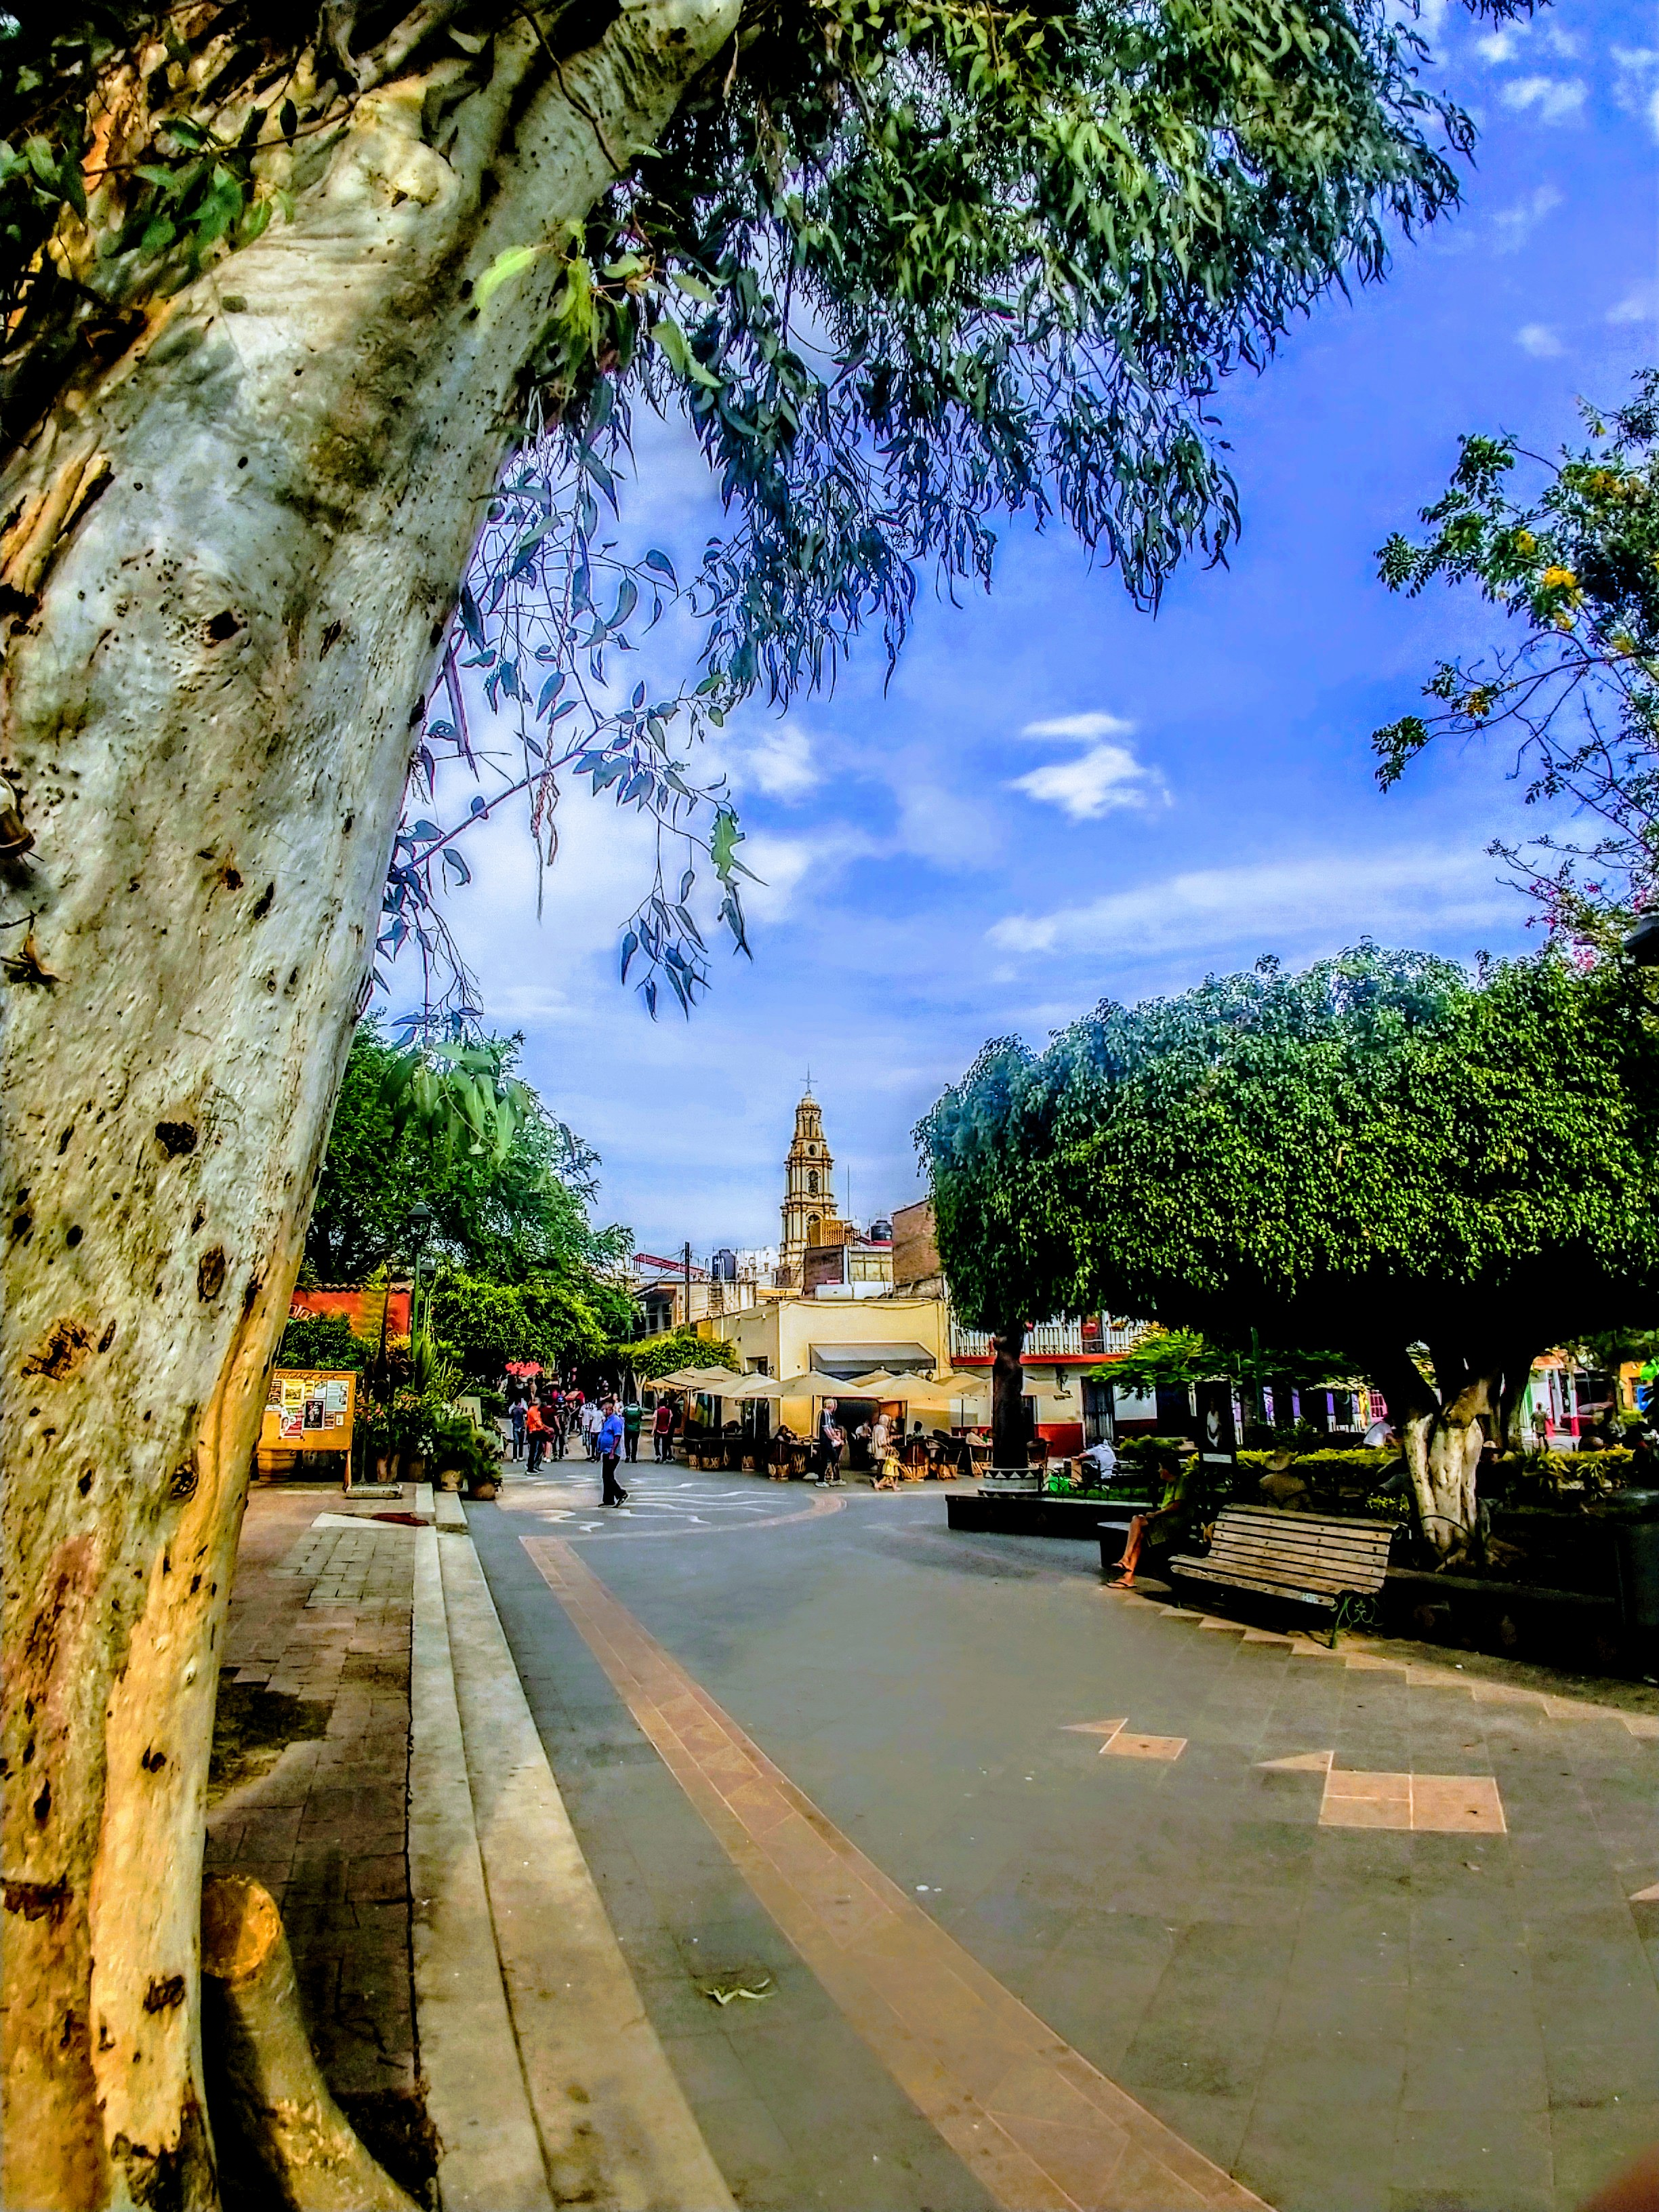 Pelé was desperate to chase something in this square. He briefly flirted with a soccer ball being kicked around by some local kids, but ended up settling for a flattened water bottle - Ajijic, Mexico